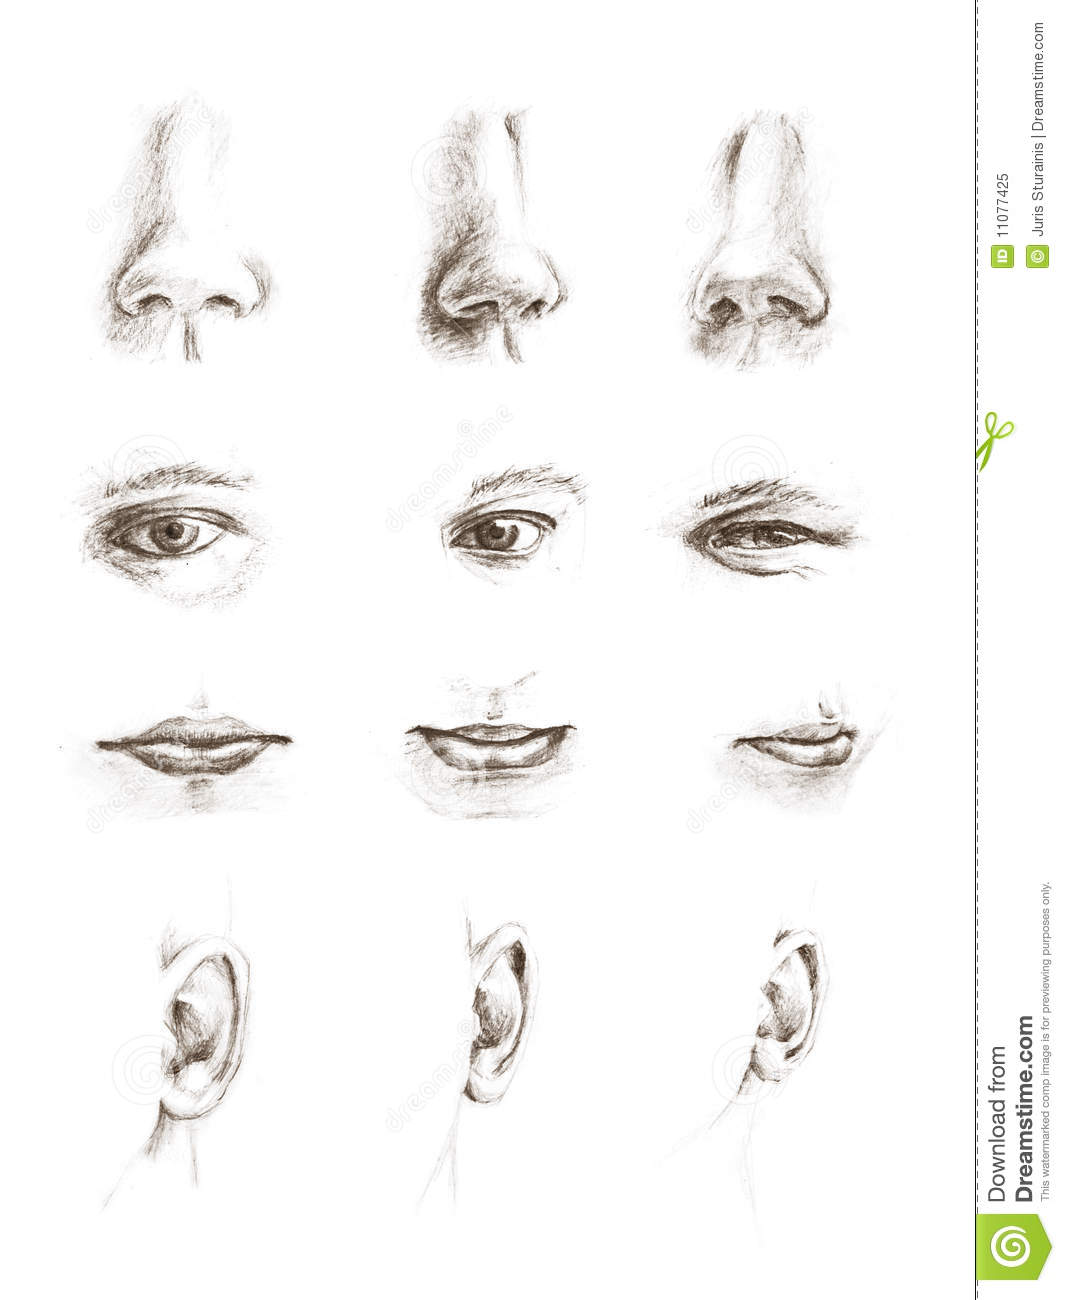 ... Eyes, Ears, Lips And Noses Royalty Free Stock Photo - Image: 11077425